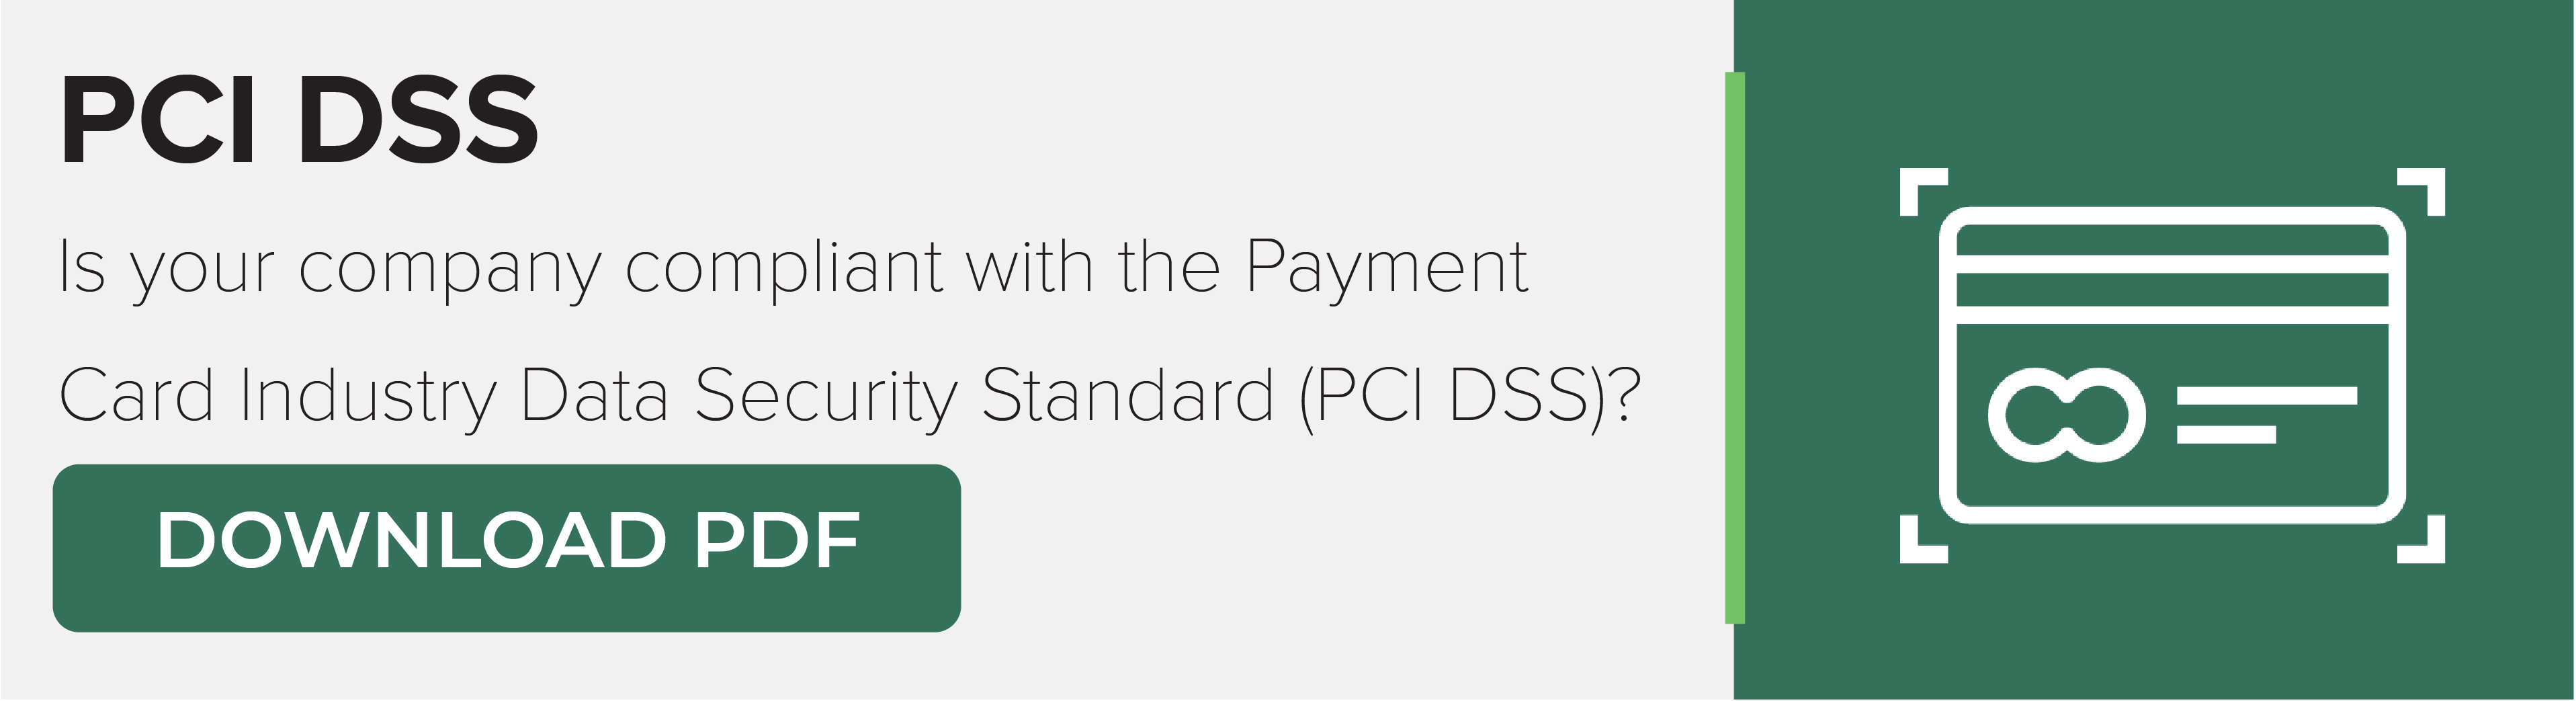 PCI DSS Download Button